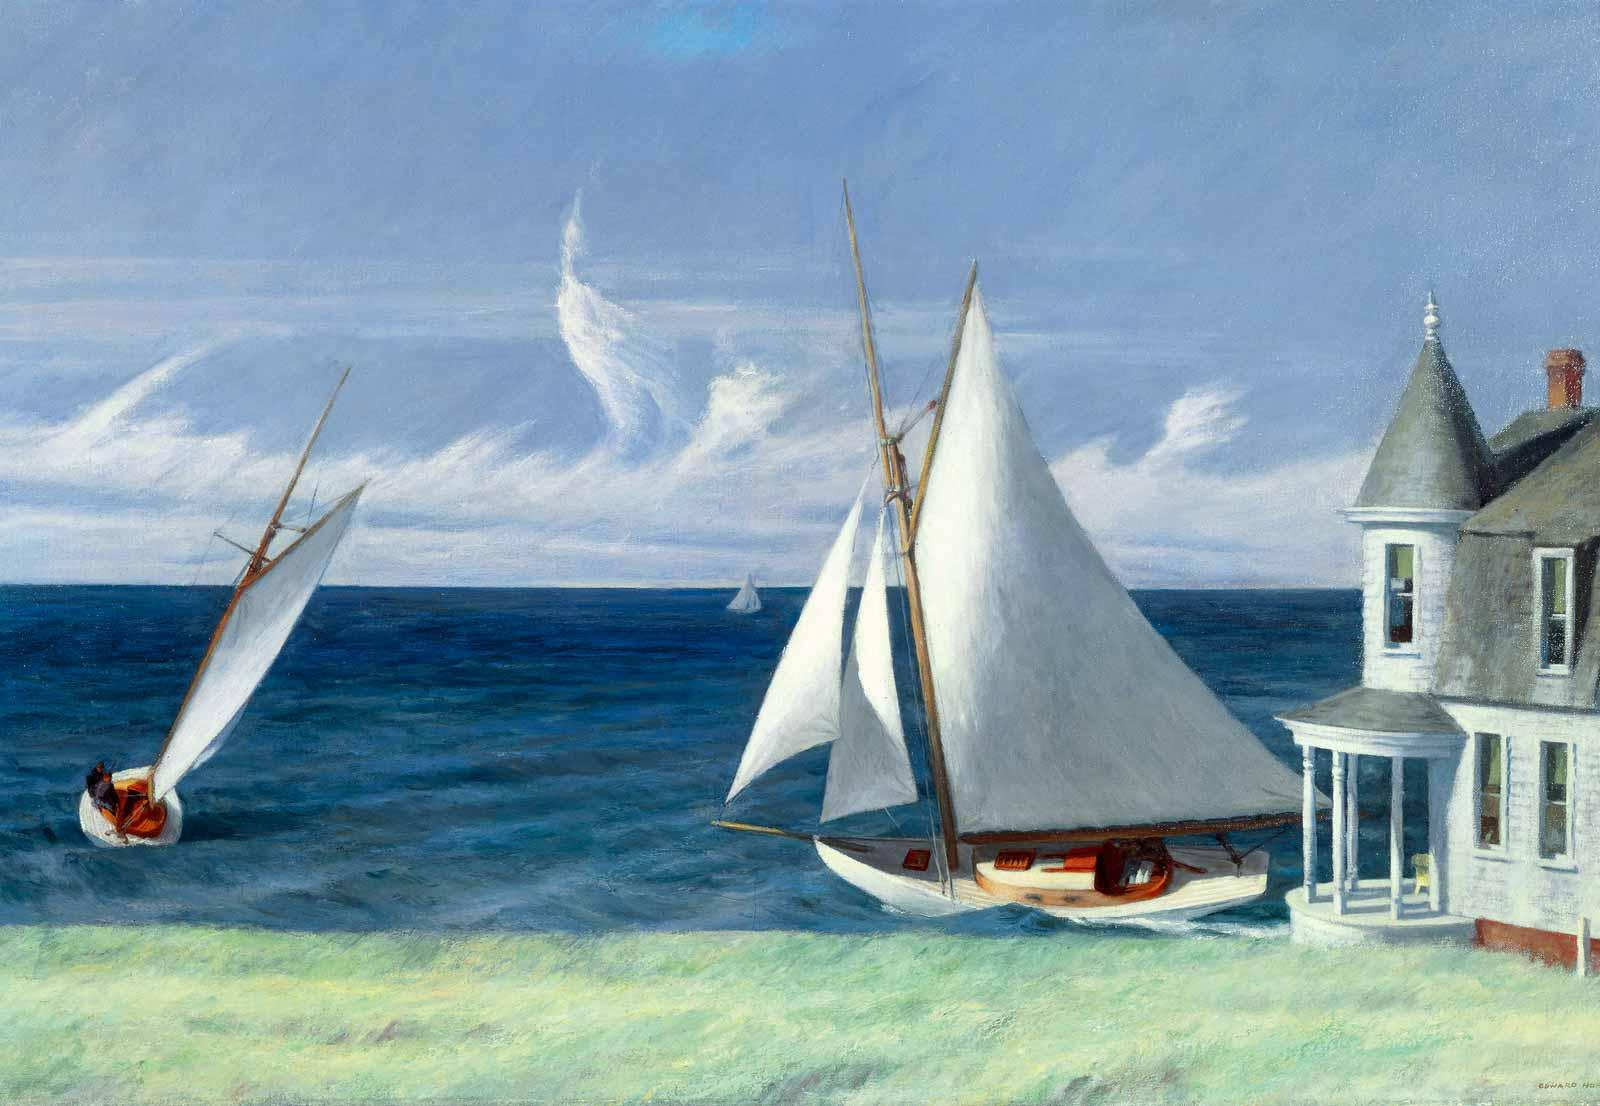 Edward Hopper, Lee Shore, 1941.